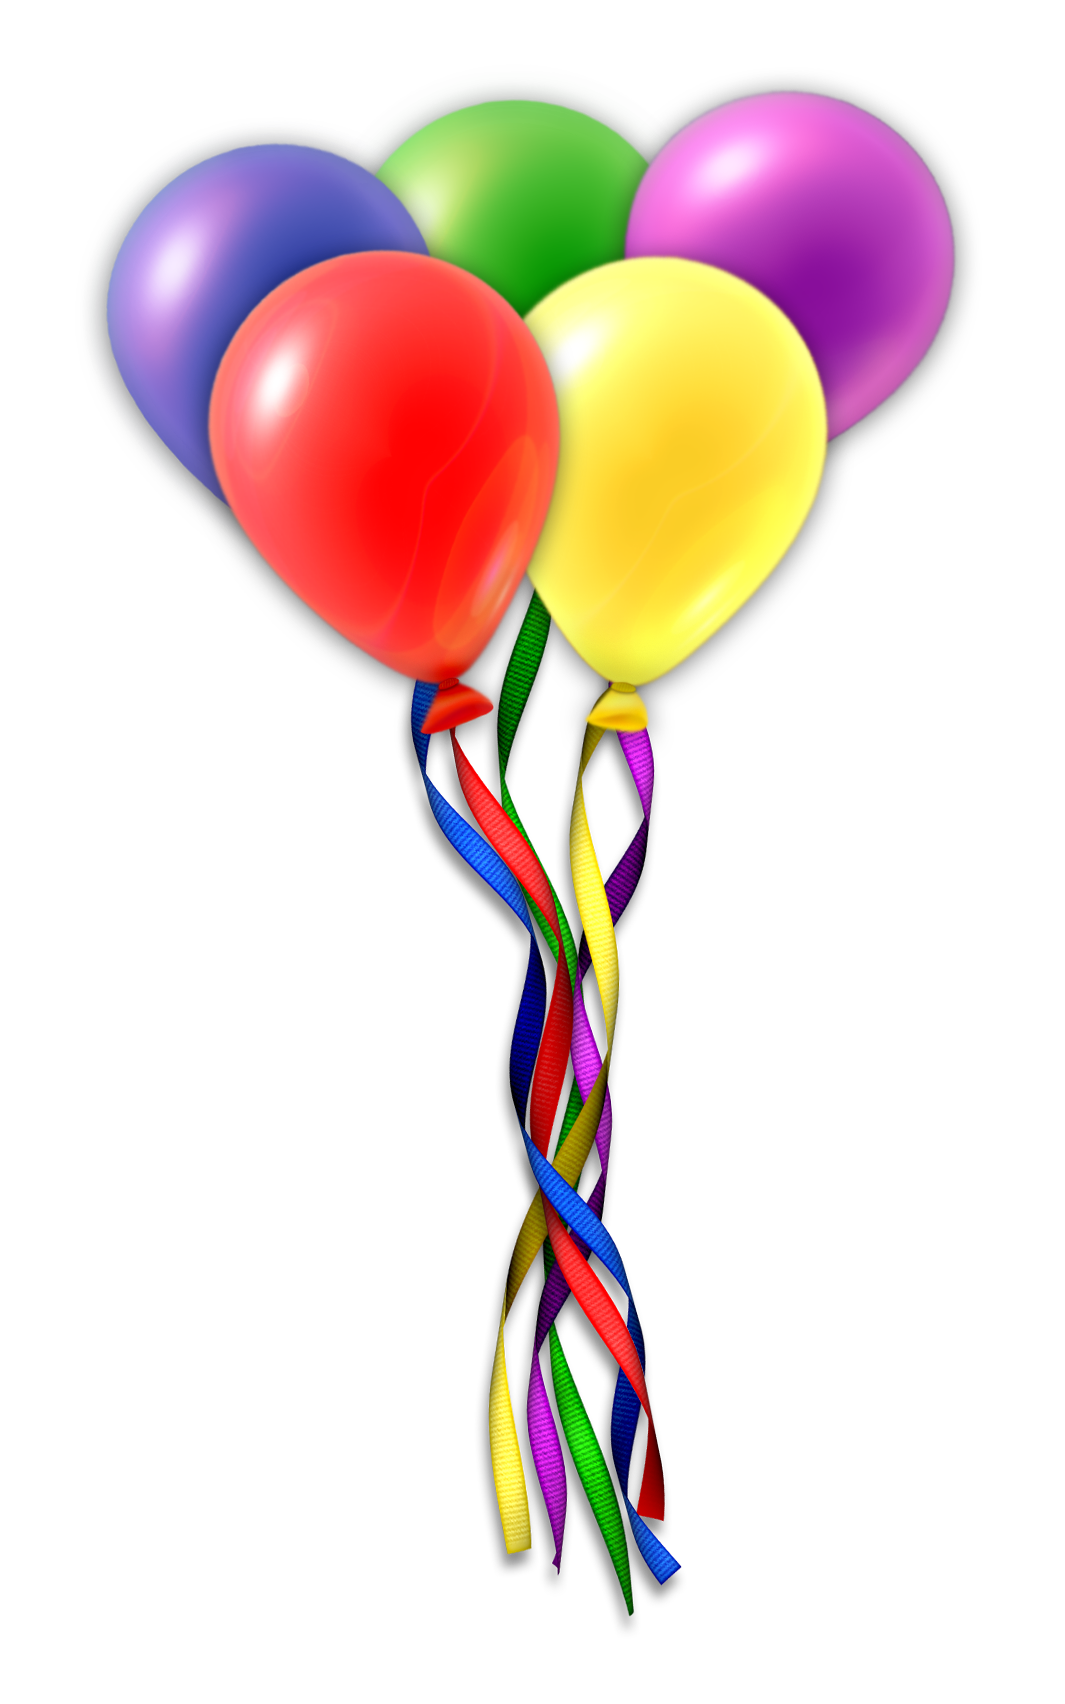 Balloons Png - Balloons Transparent Background